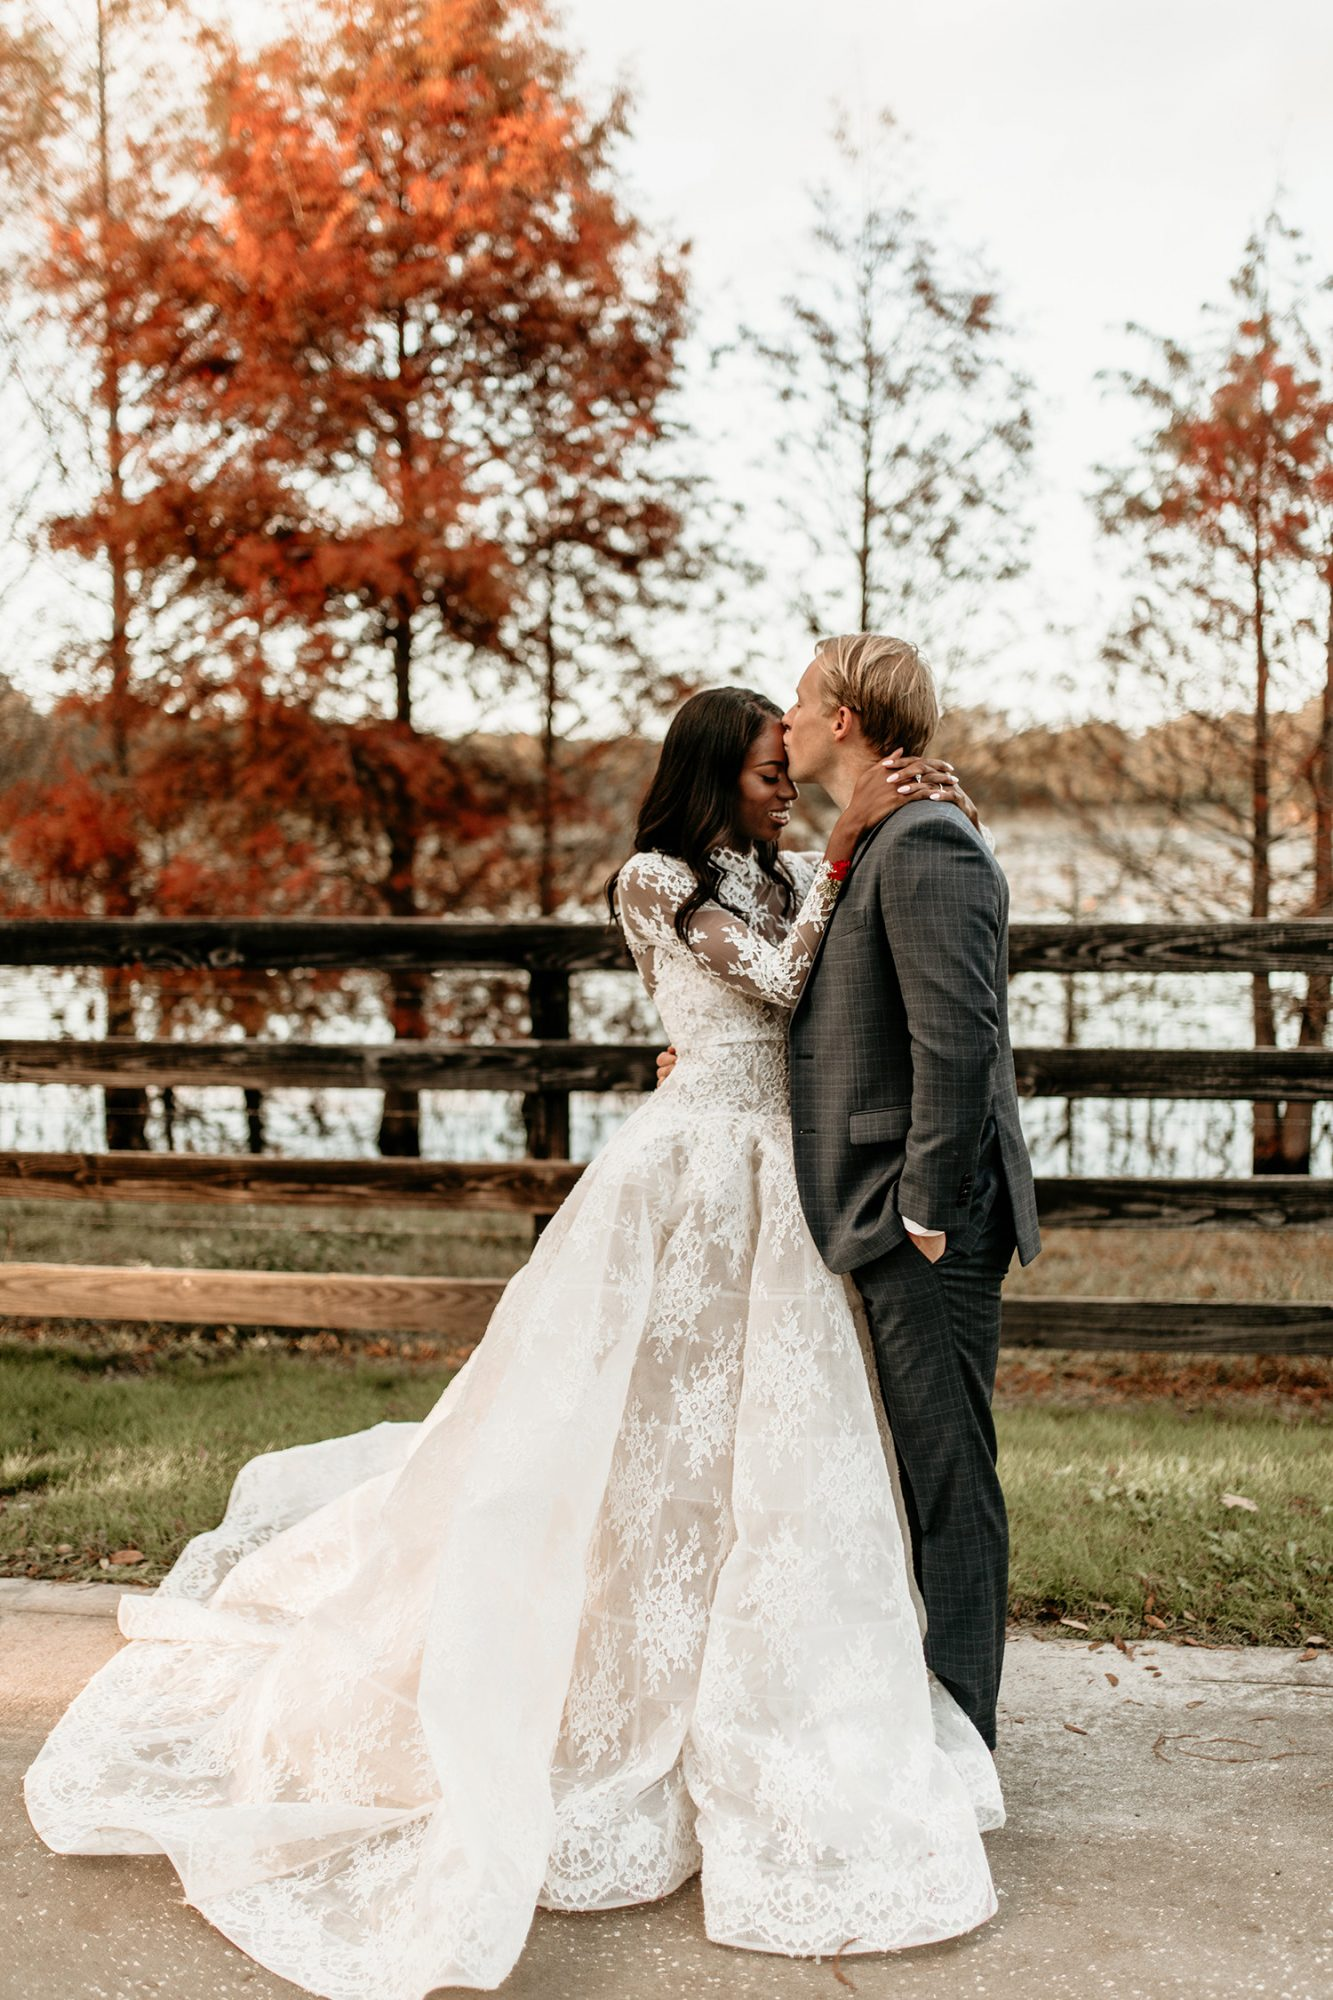 39 of Our Favorite Ideas for Your Fall Wedding | Martha Stewart